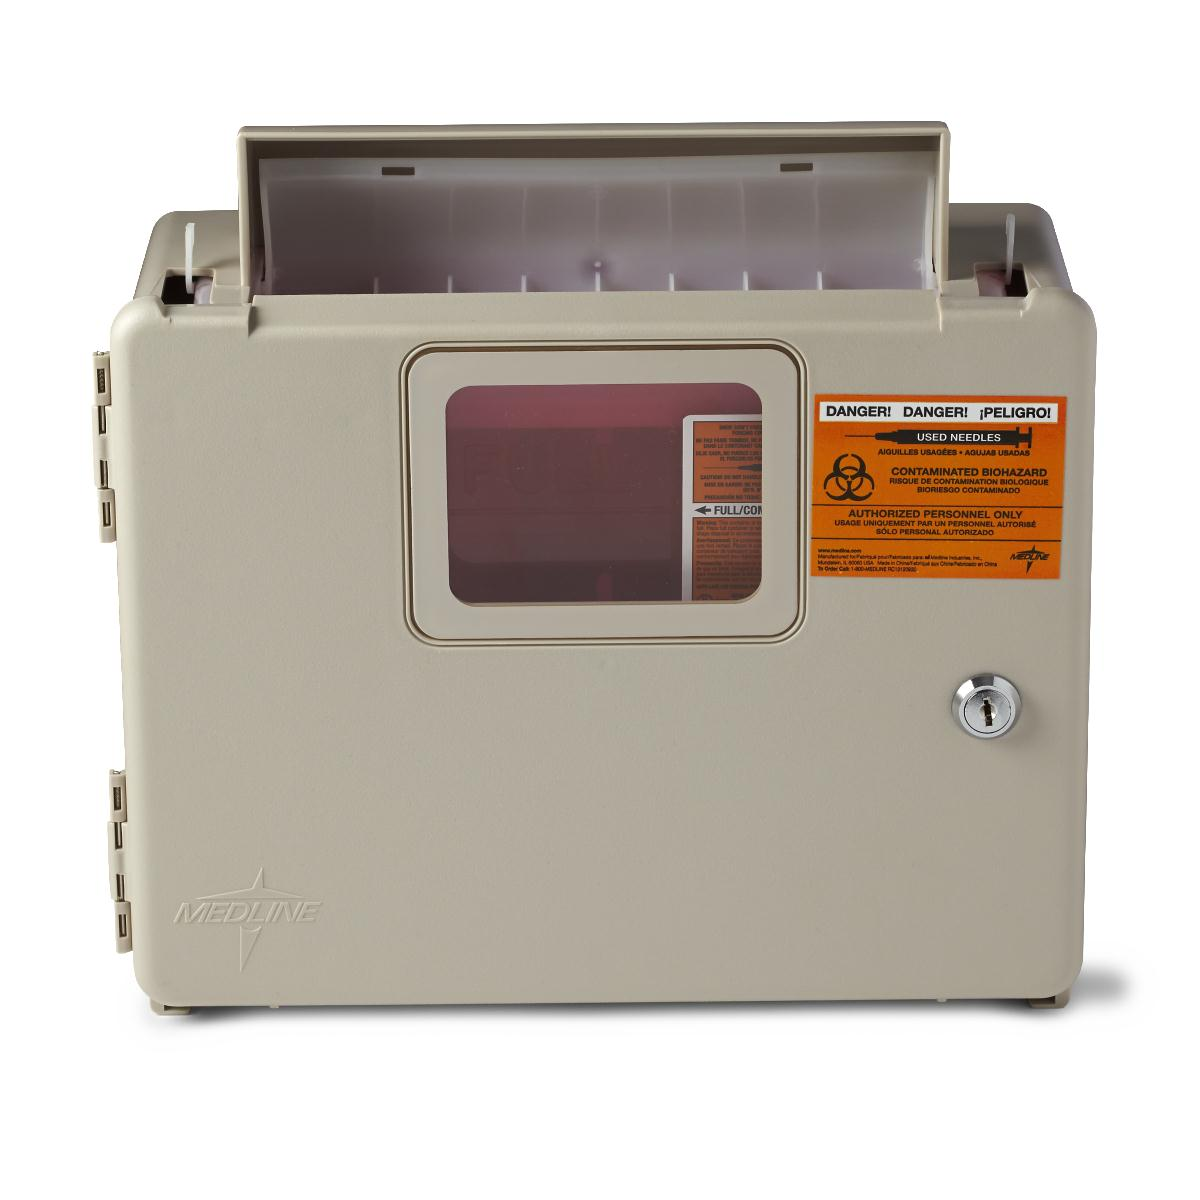 SHARPS LOCKING WALL CABINET F/MDS705153 SHARPS CONTAINER